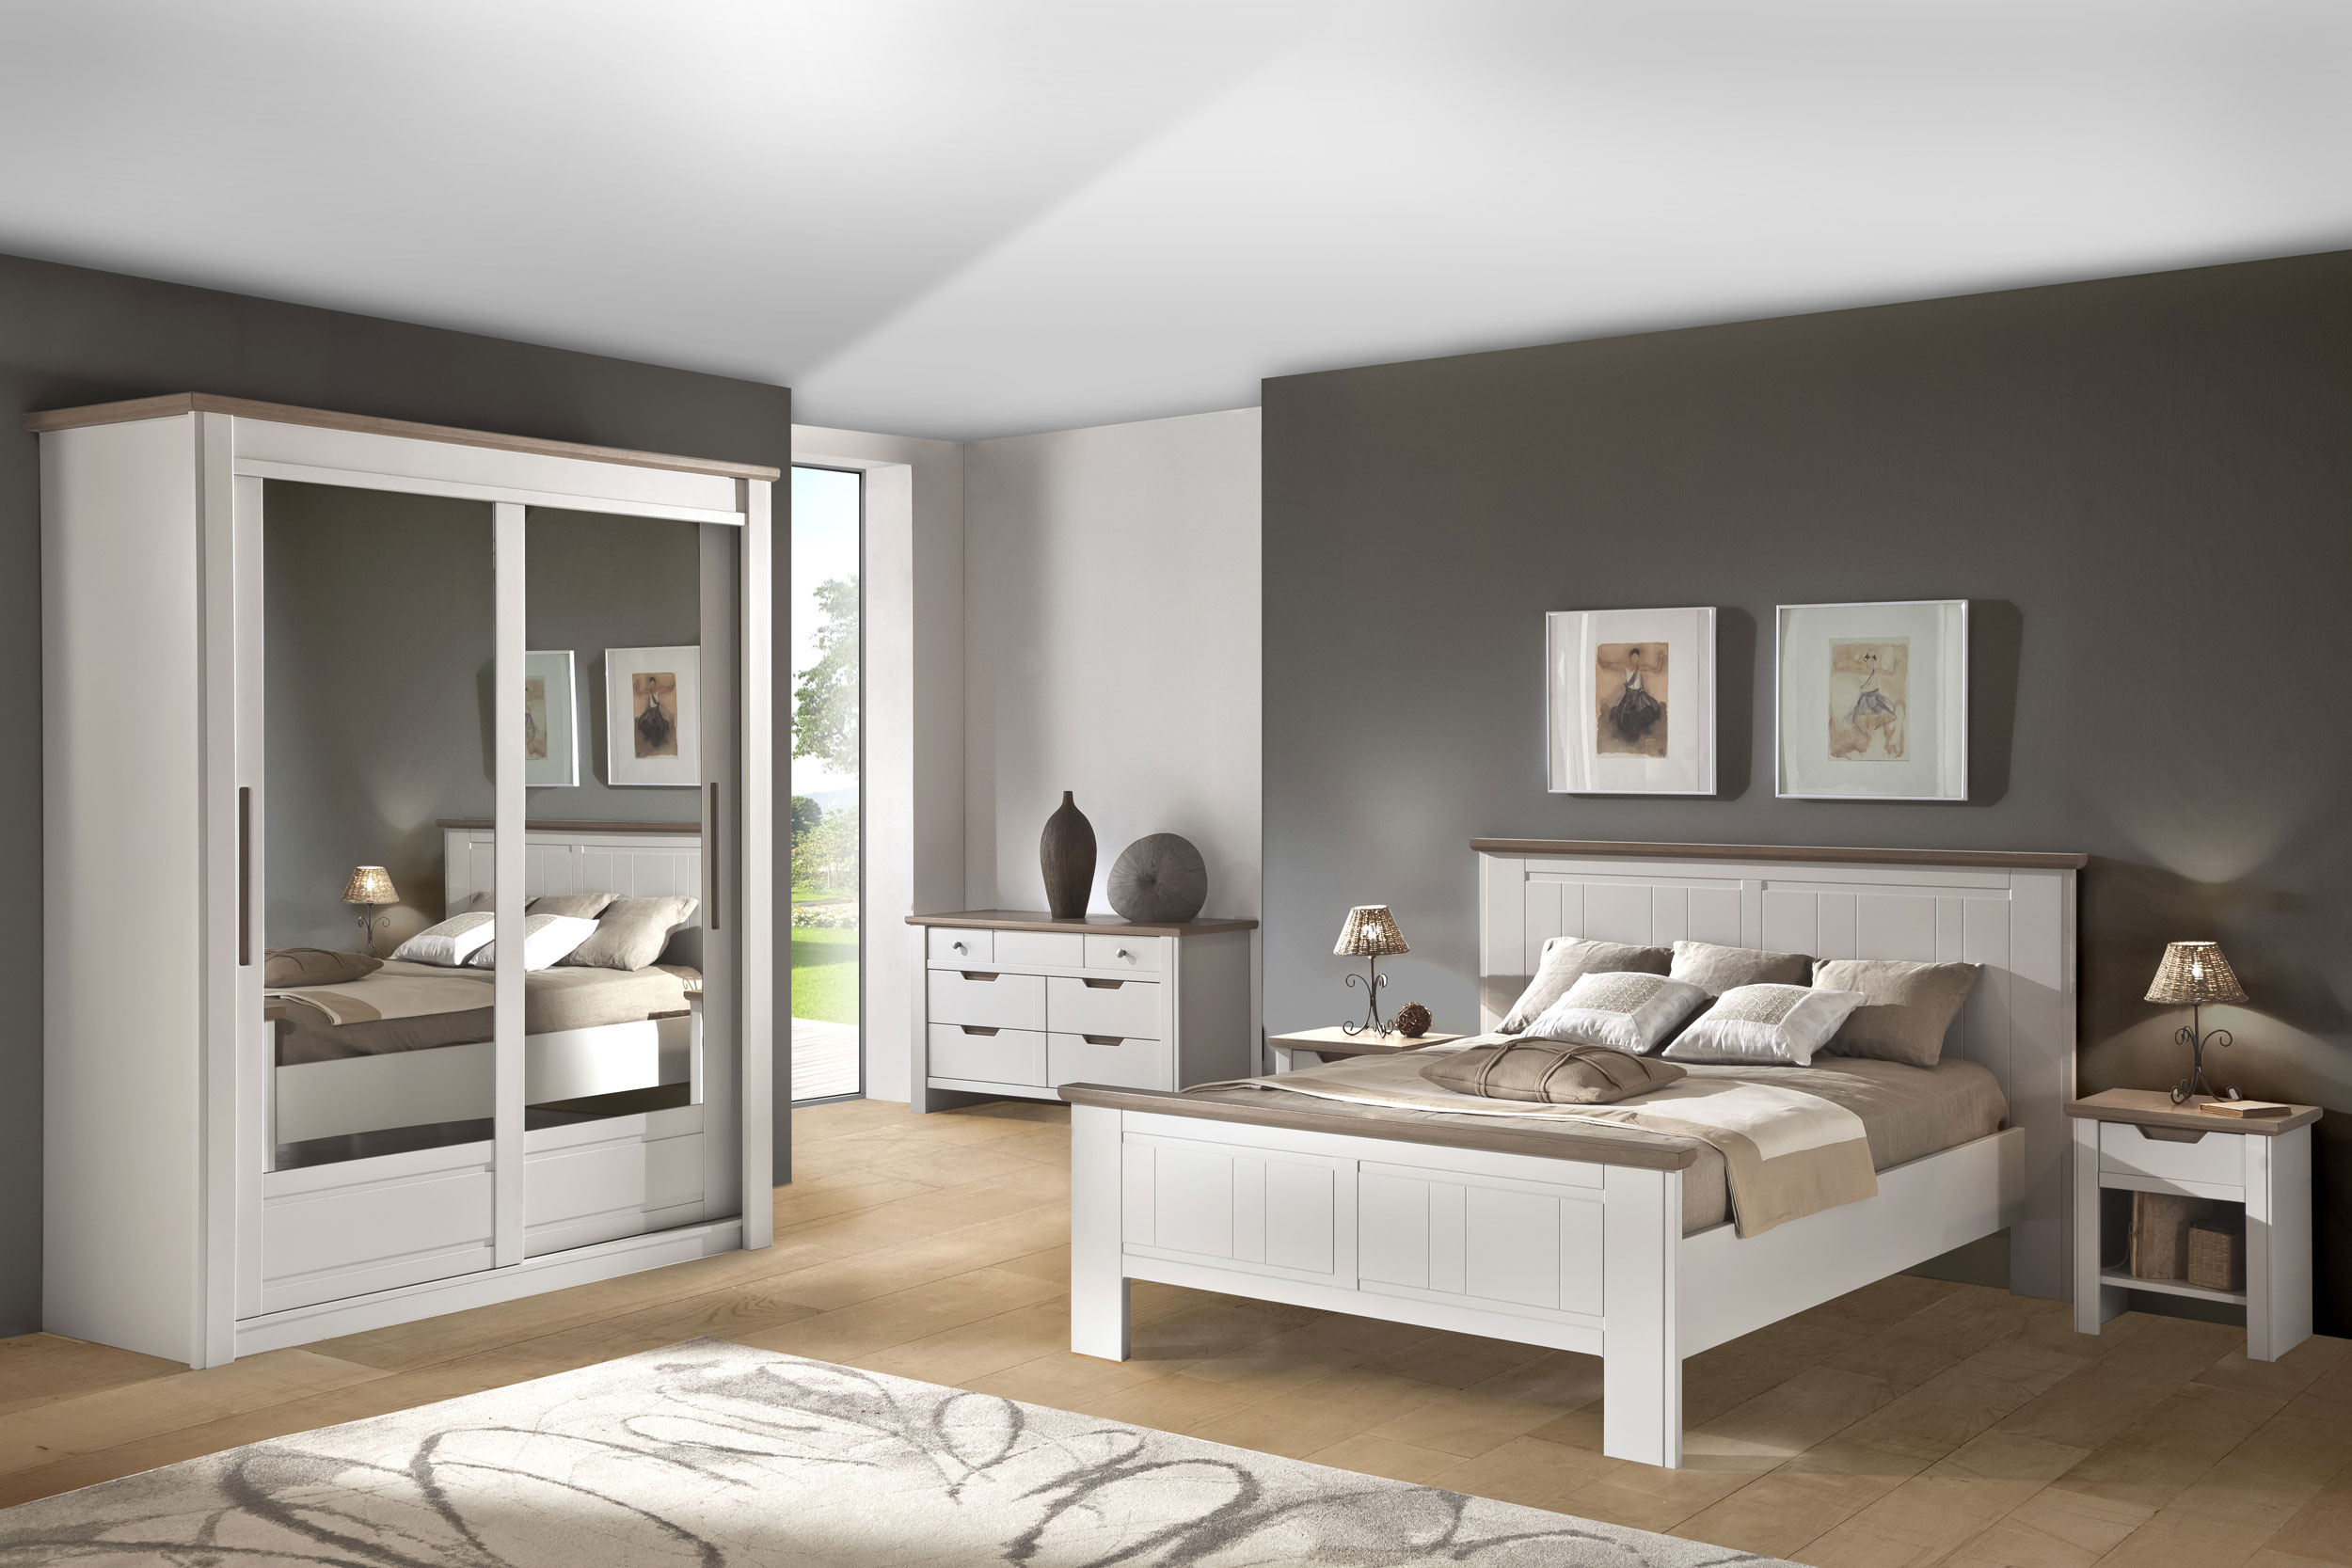 armoire blanche chambre placard sous pente encastr ides. Black Bedroom Furniture Sets. Home Design Ideas